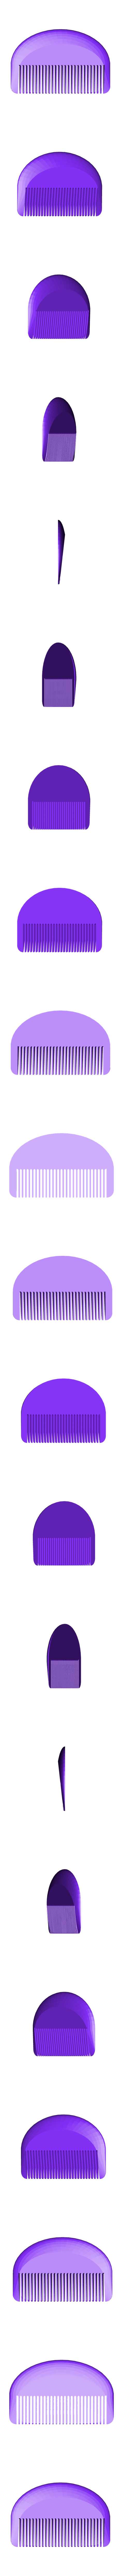 customized_beard_comb_no2.stl Download free STL file Customizable Comb • 3D printable model, MightyNozzle